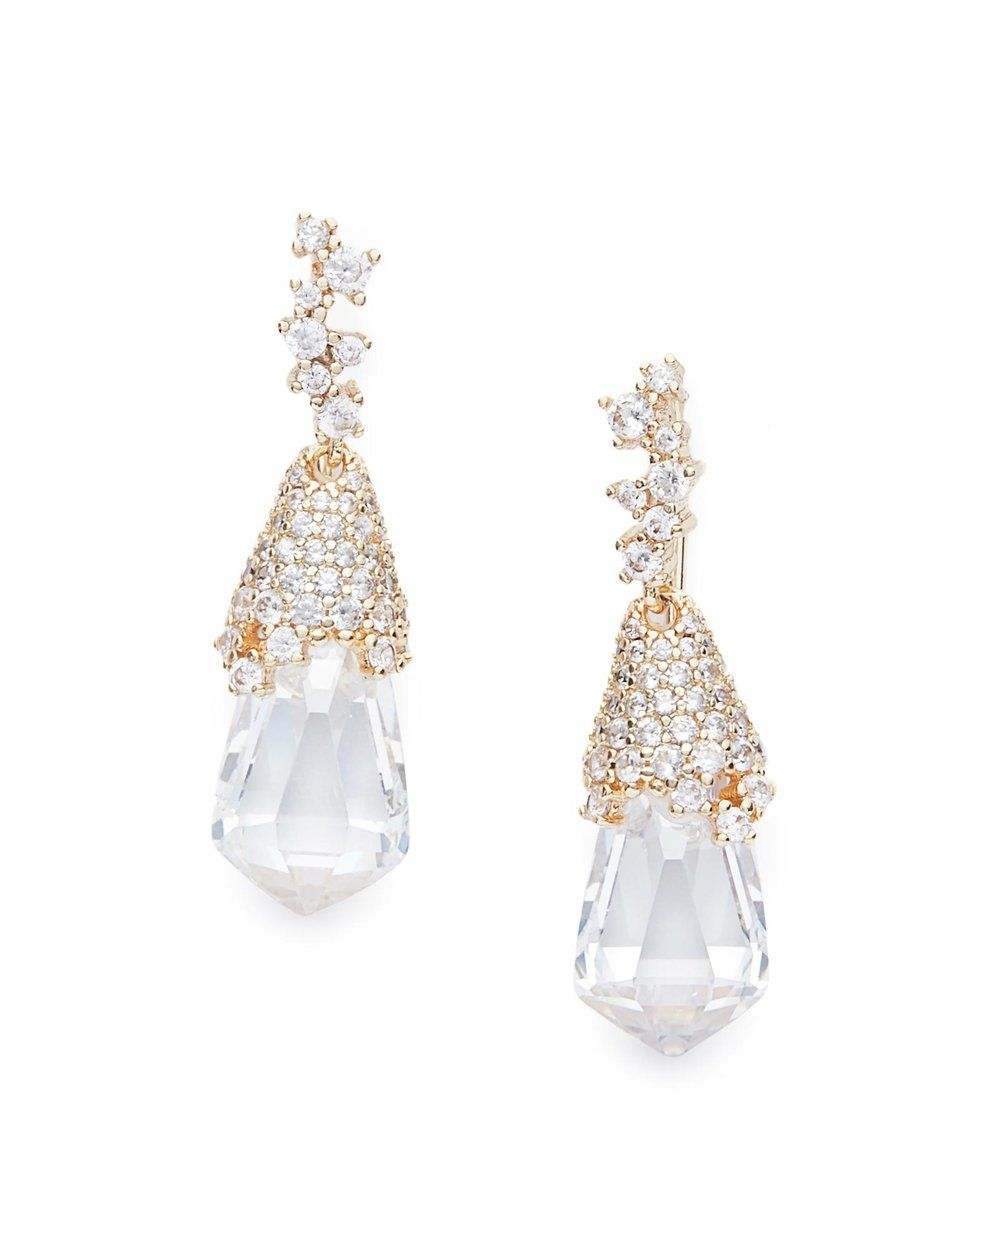 Kendra scott becky drop earrings lifestyle commodity me